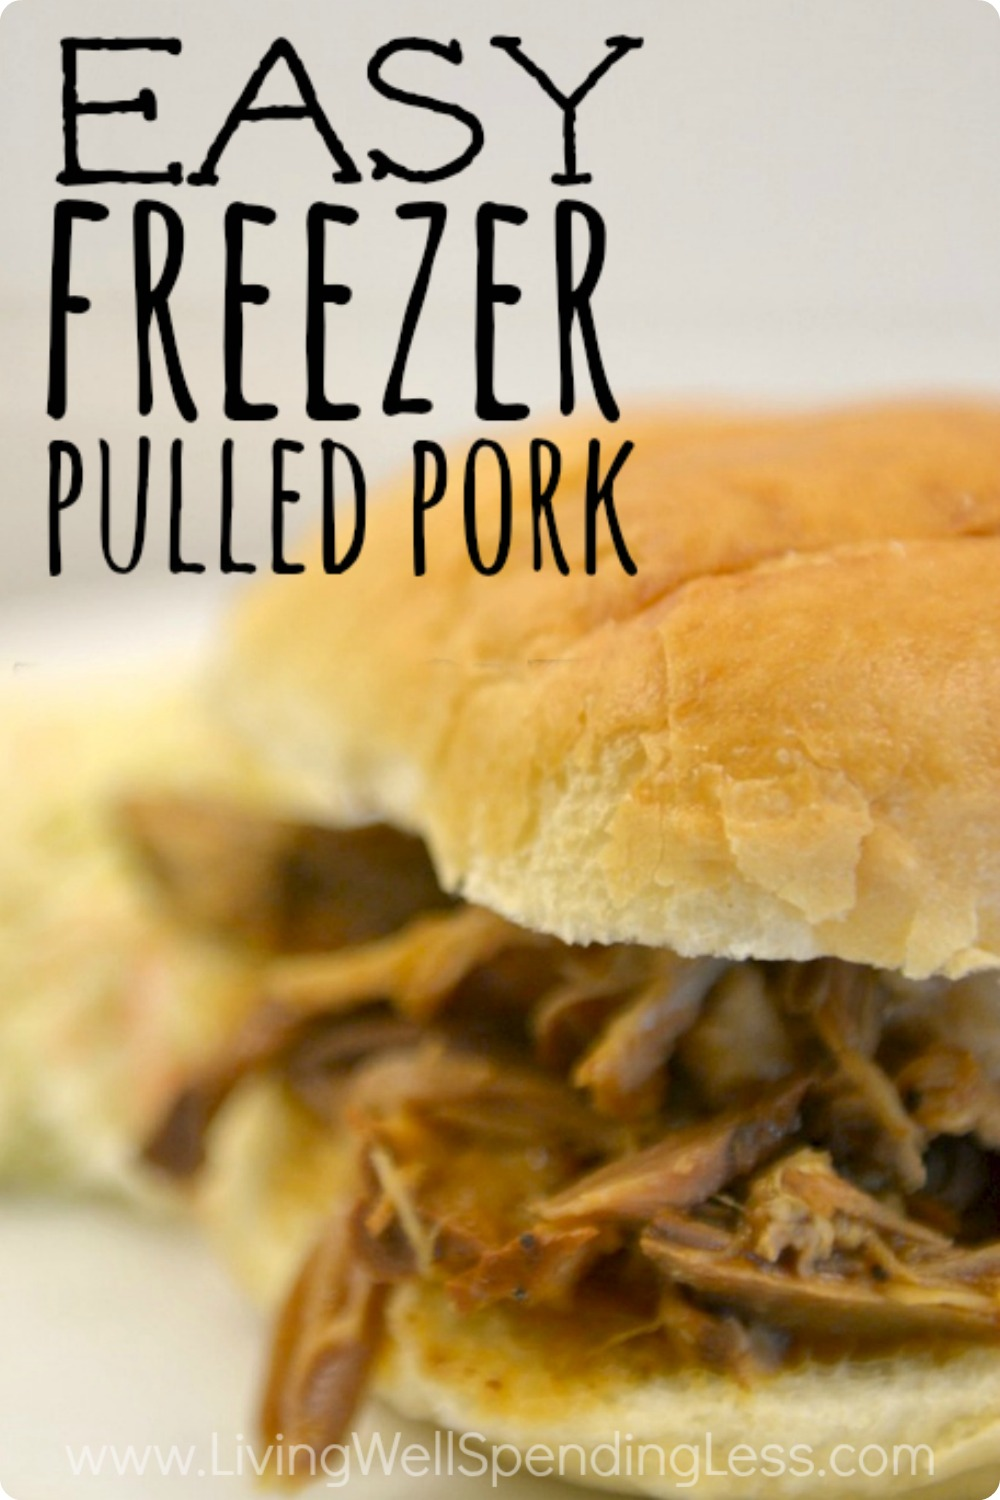 Easy Freezer Pulled Pork | Easy Slow-Cooker Freezer Meals | Freezer Cooking |  Dinner Recipes | Freeze + Dump Slow Cooker Meals | Slow Cooker Pulled Pork